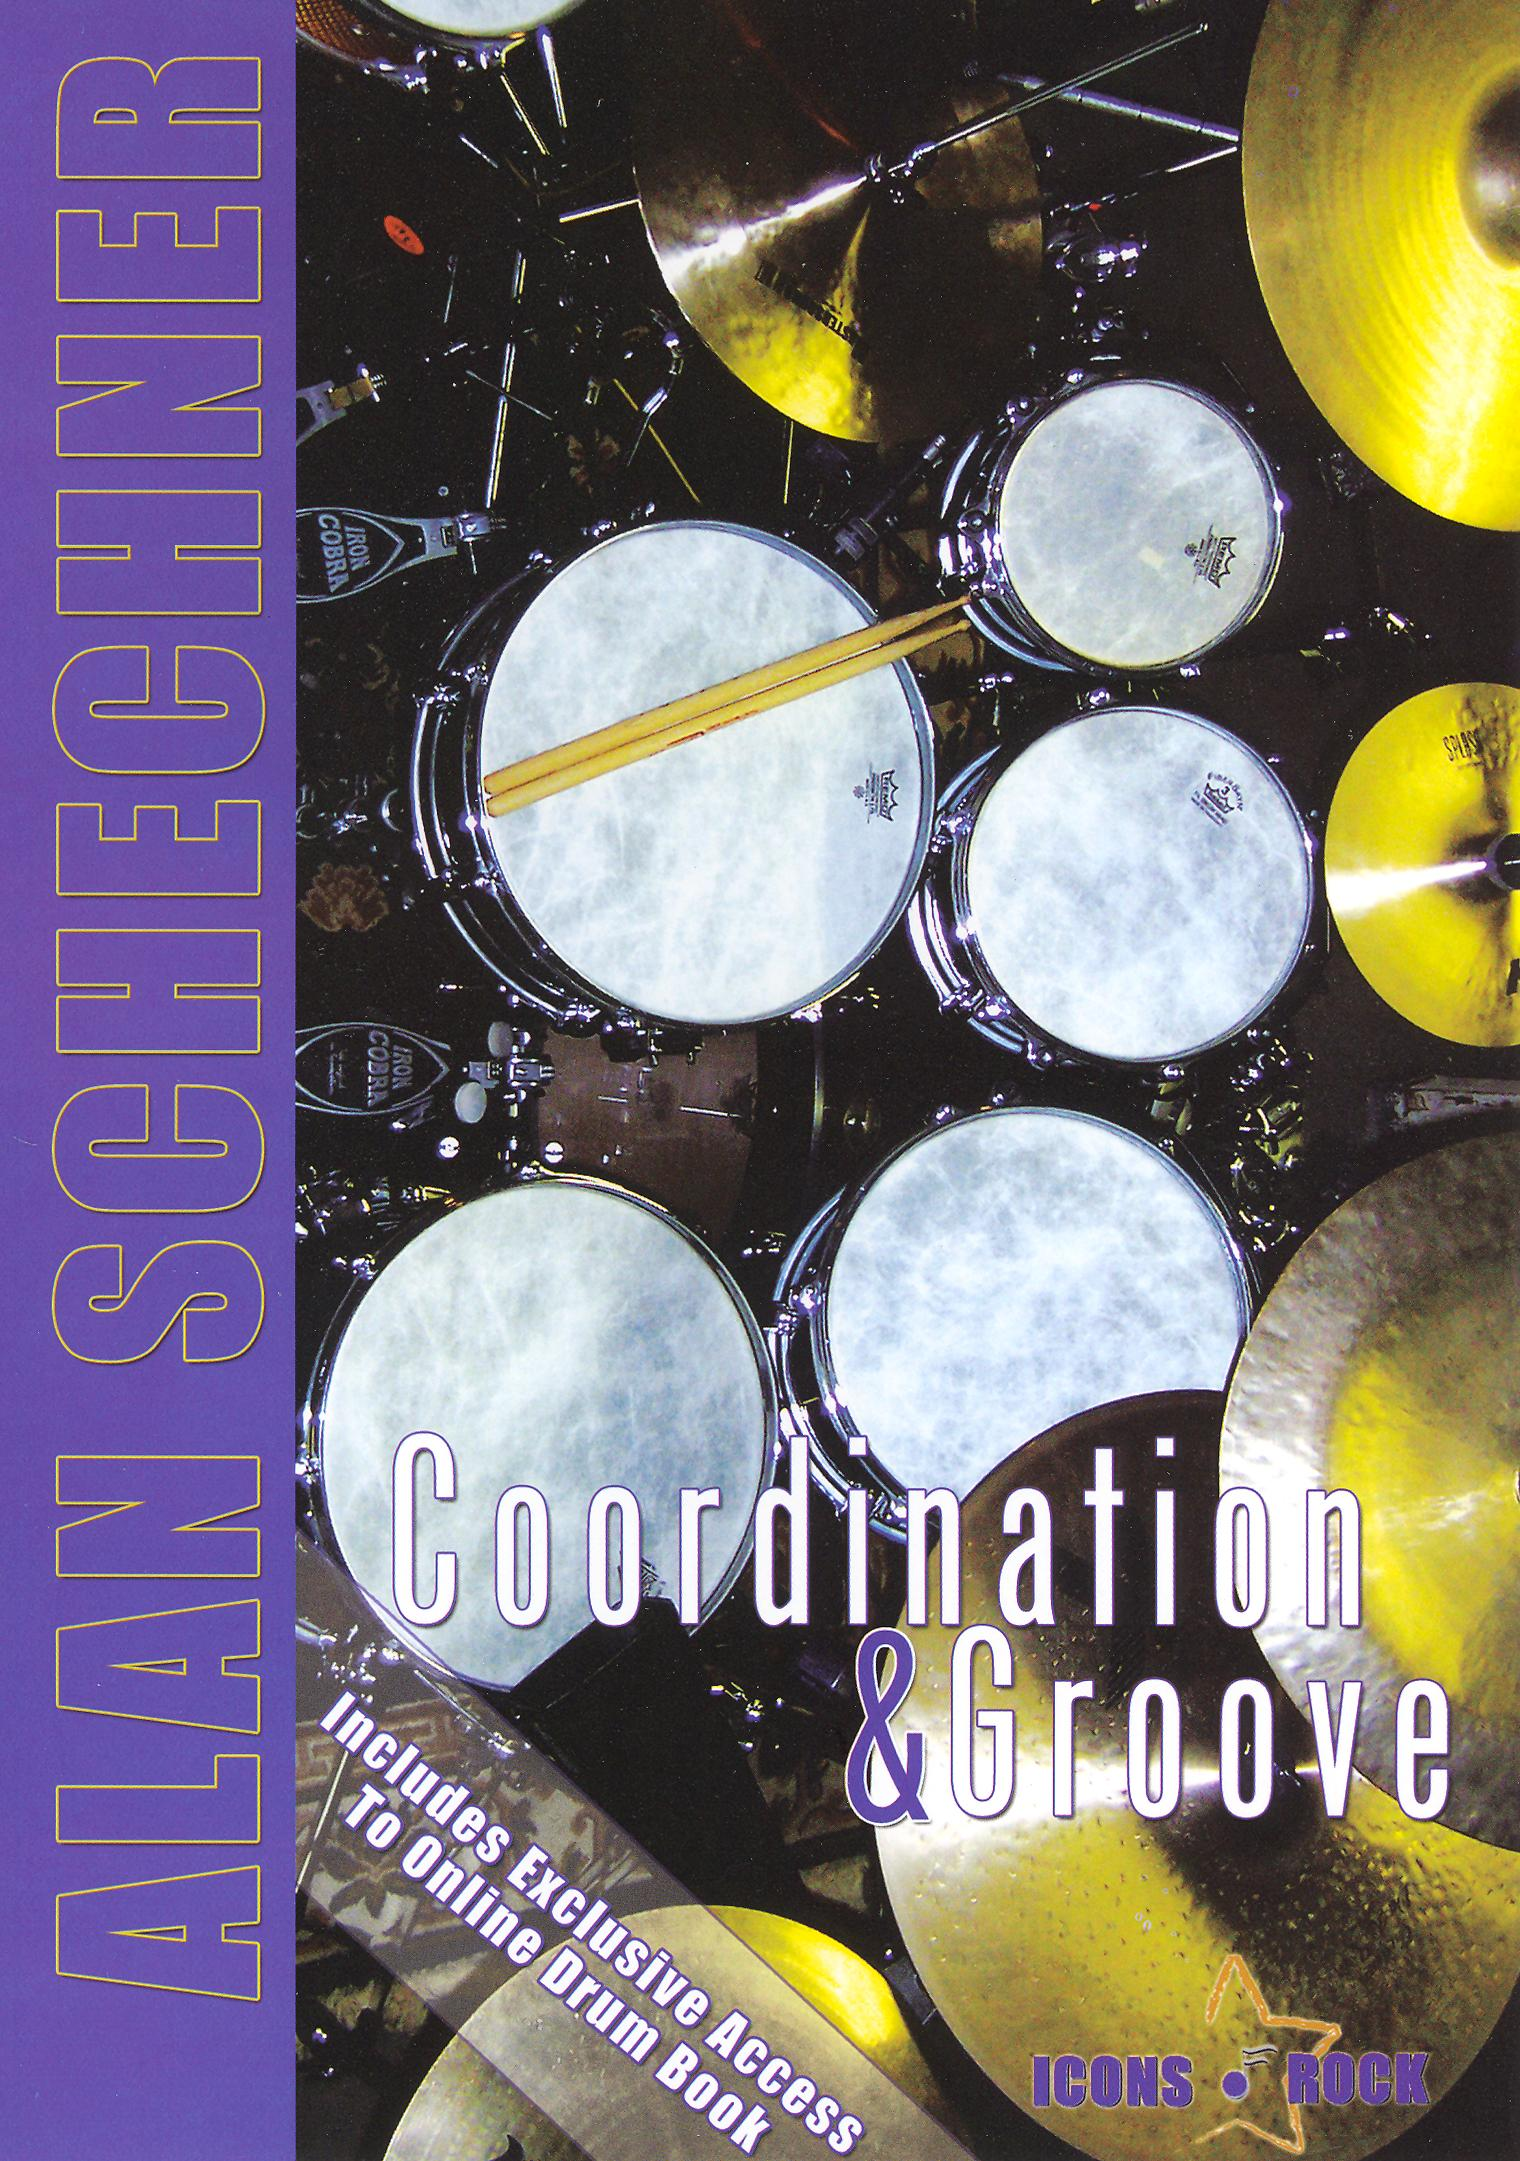 Alan Schechner: Drums - Coordination and Groove